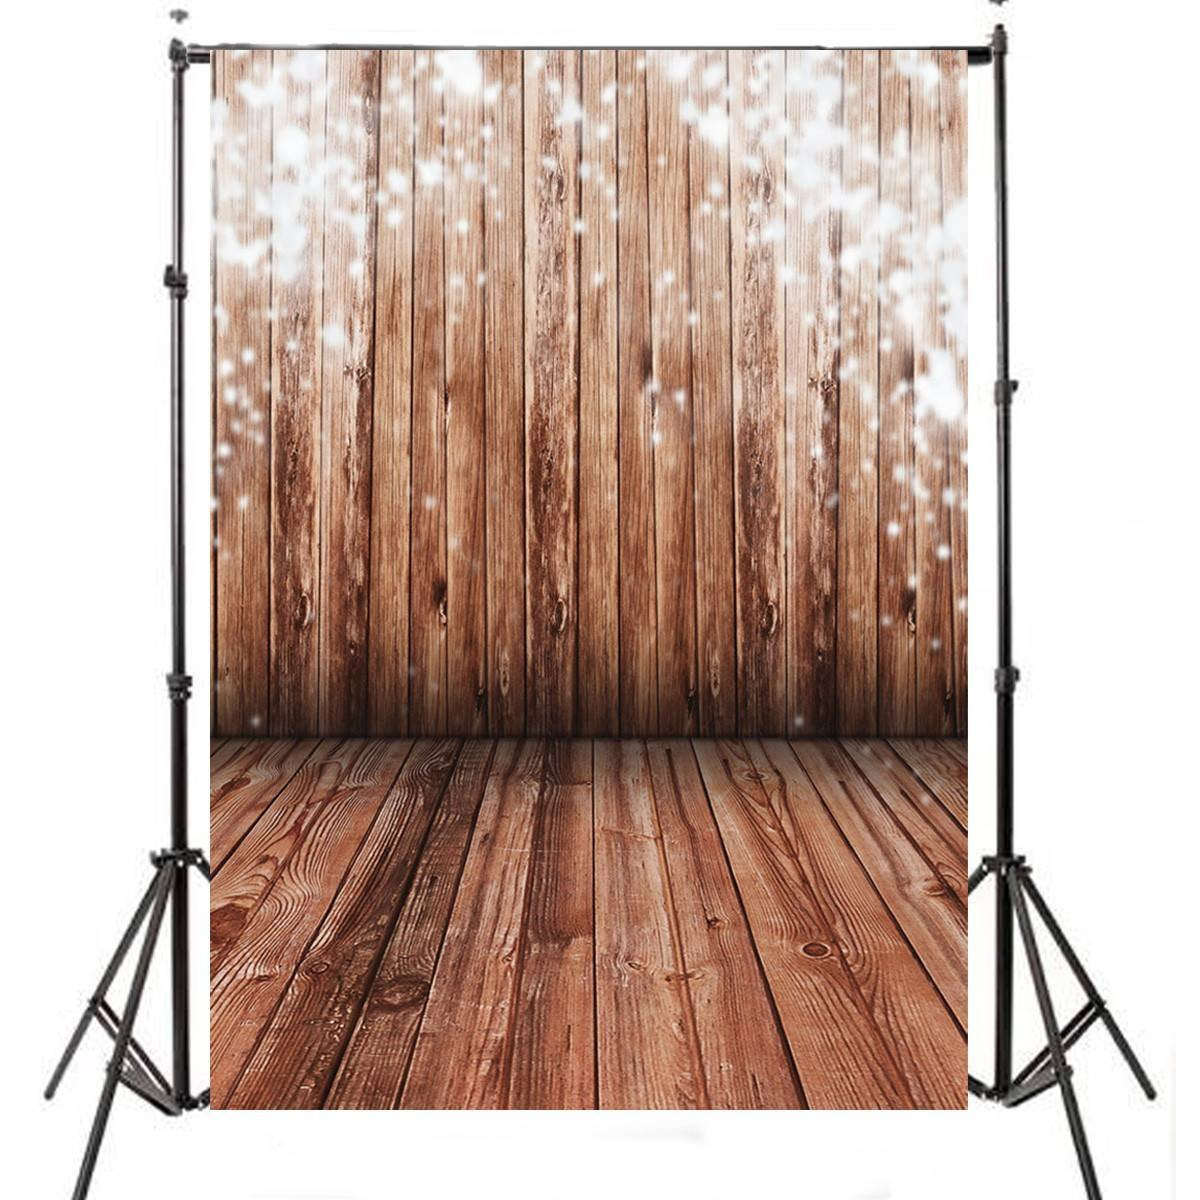 5x7FT Wood Wall Vinyl Photography Backdrop Photo Background Studio Props High Quality New Best Price 1pc beautiful white wood wall background vinyl wall floor photography backdrop shooting photo studio prop 1 5x2 1m mayitr